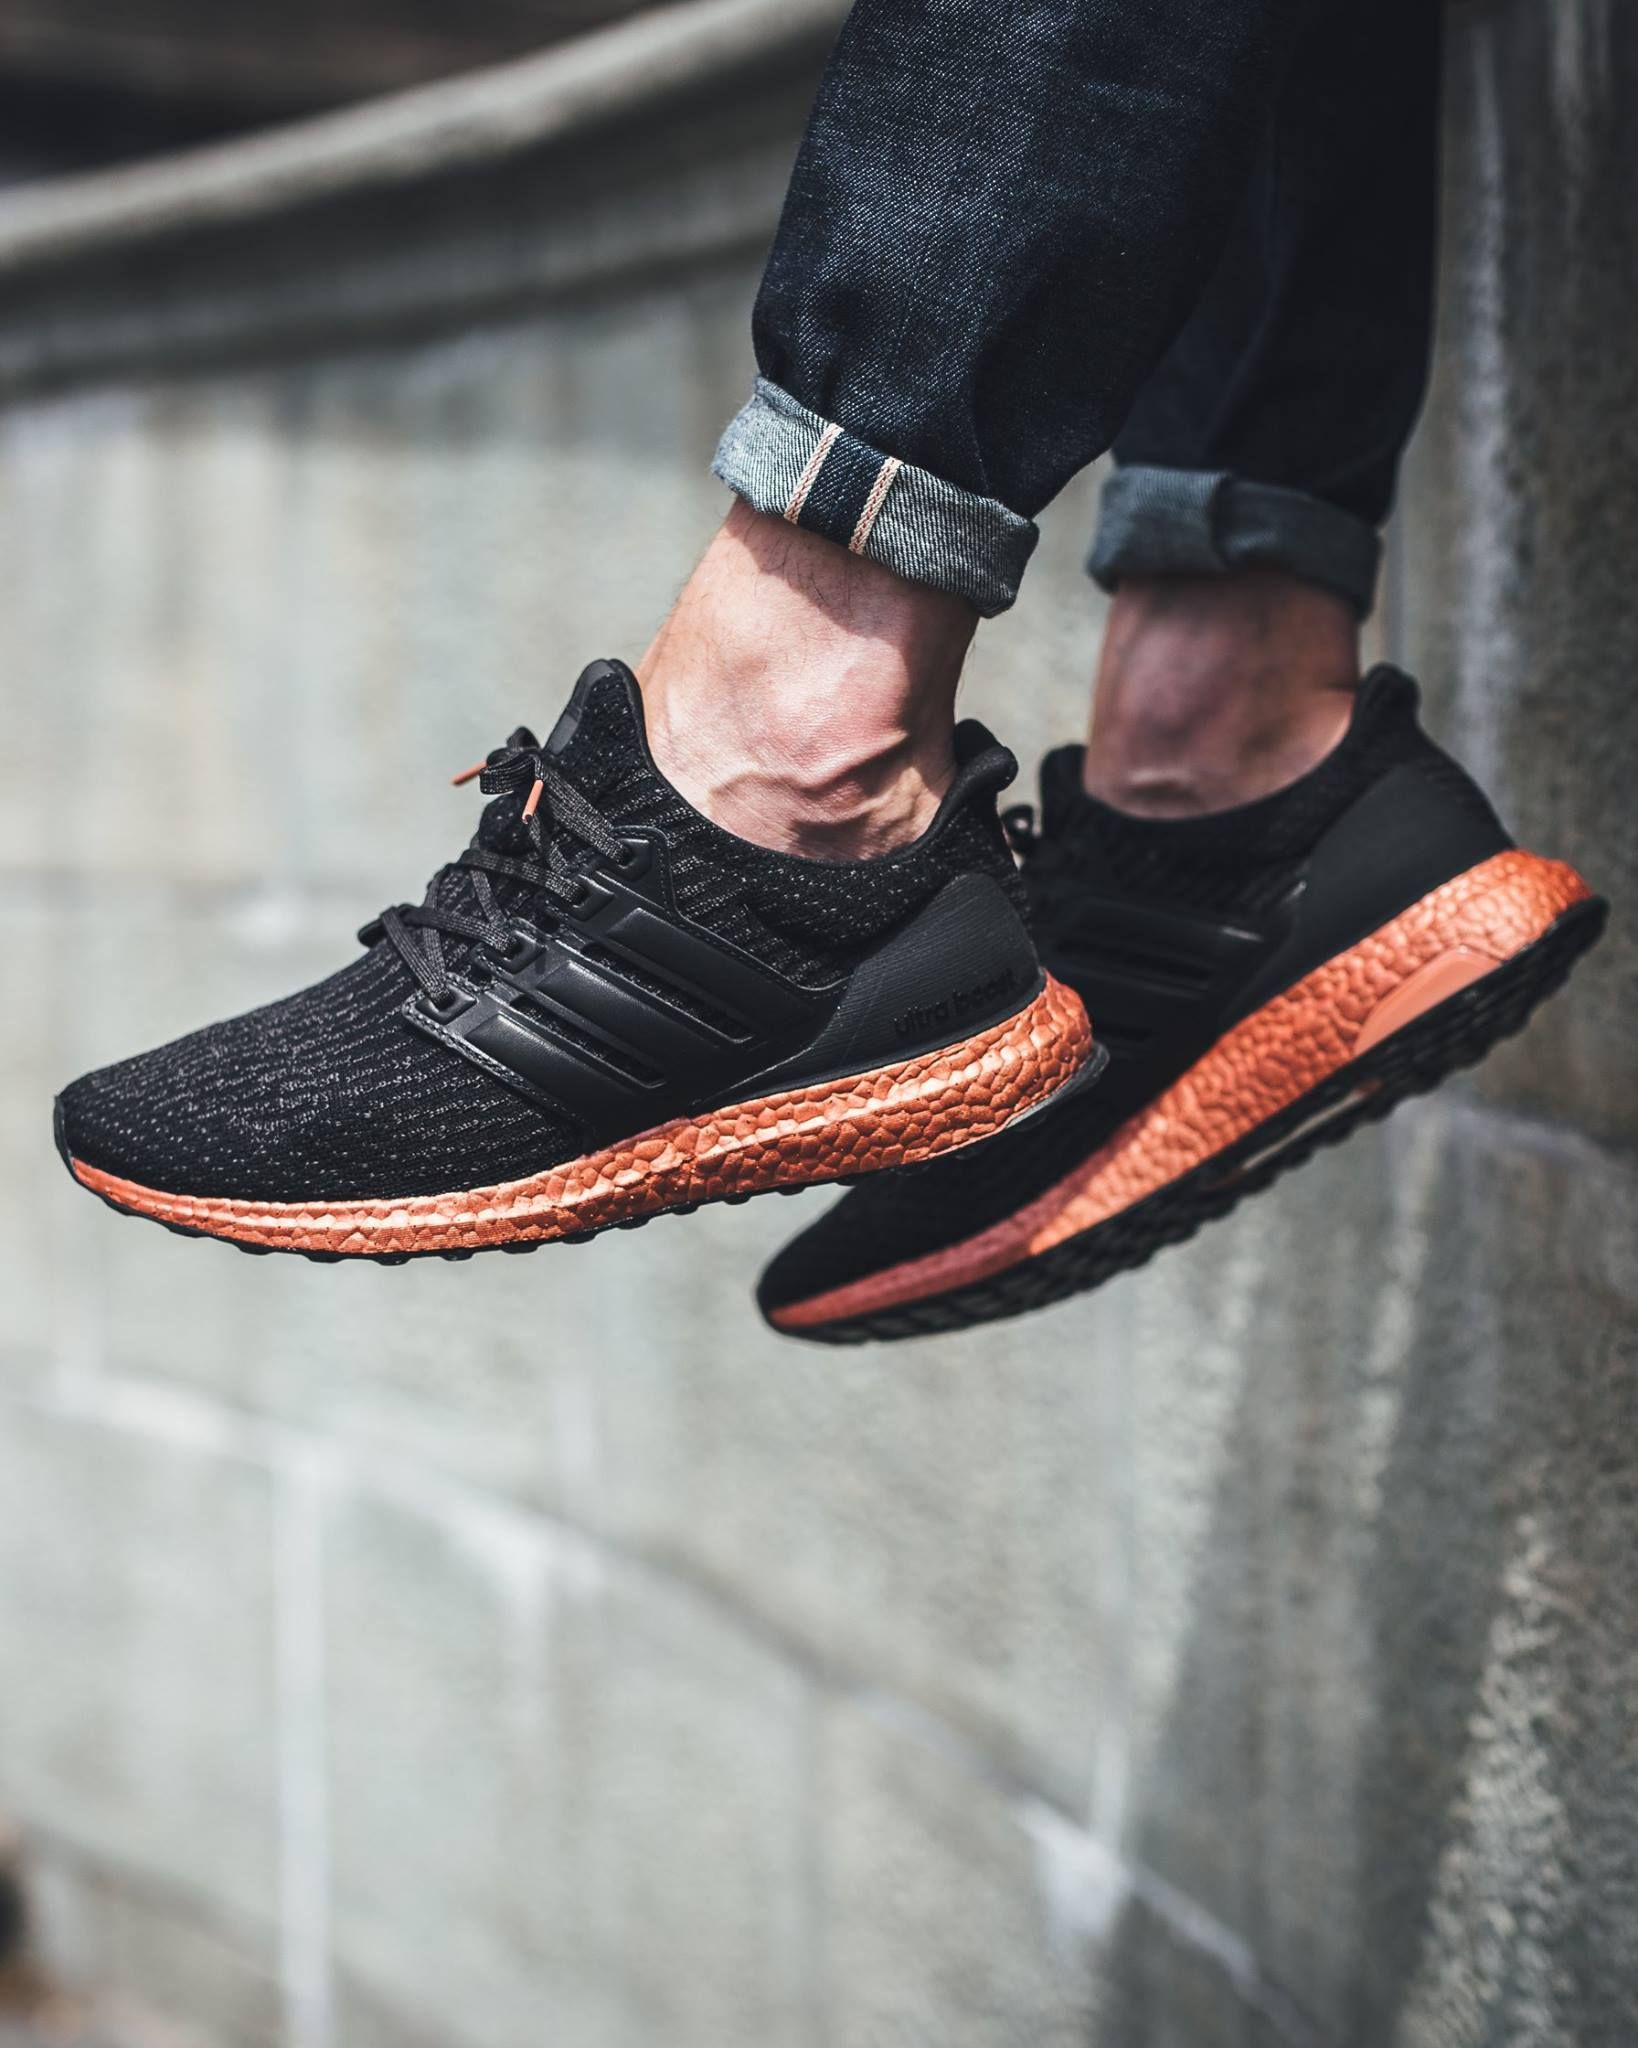 adidas Ultra Boost 3.0 'Tech Rust' (CG4086) KICKS DAILY